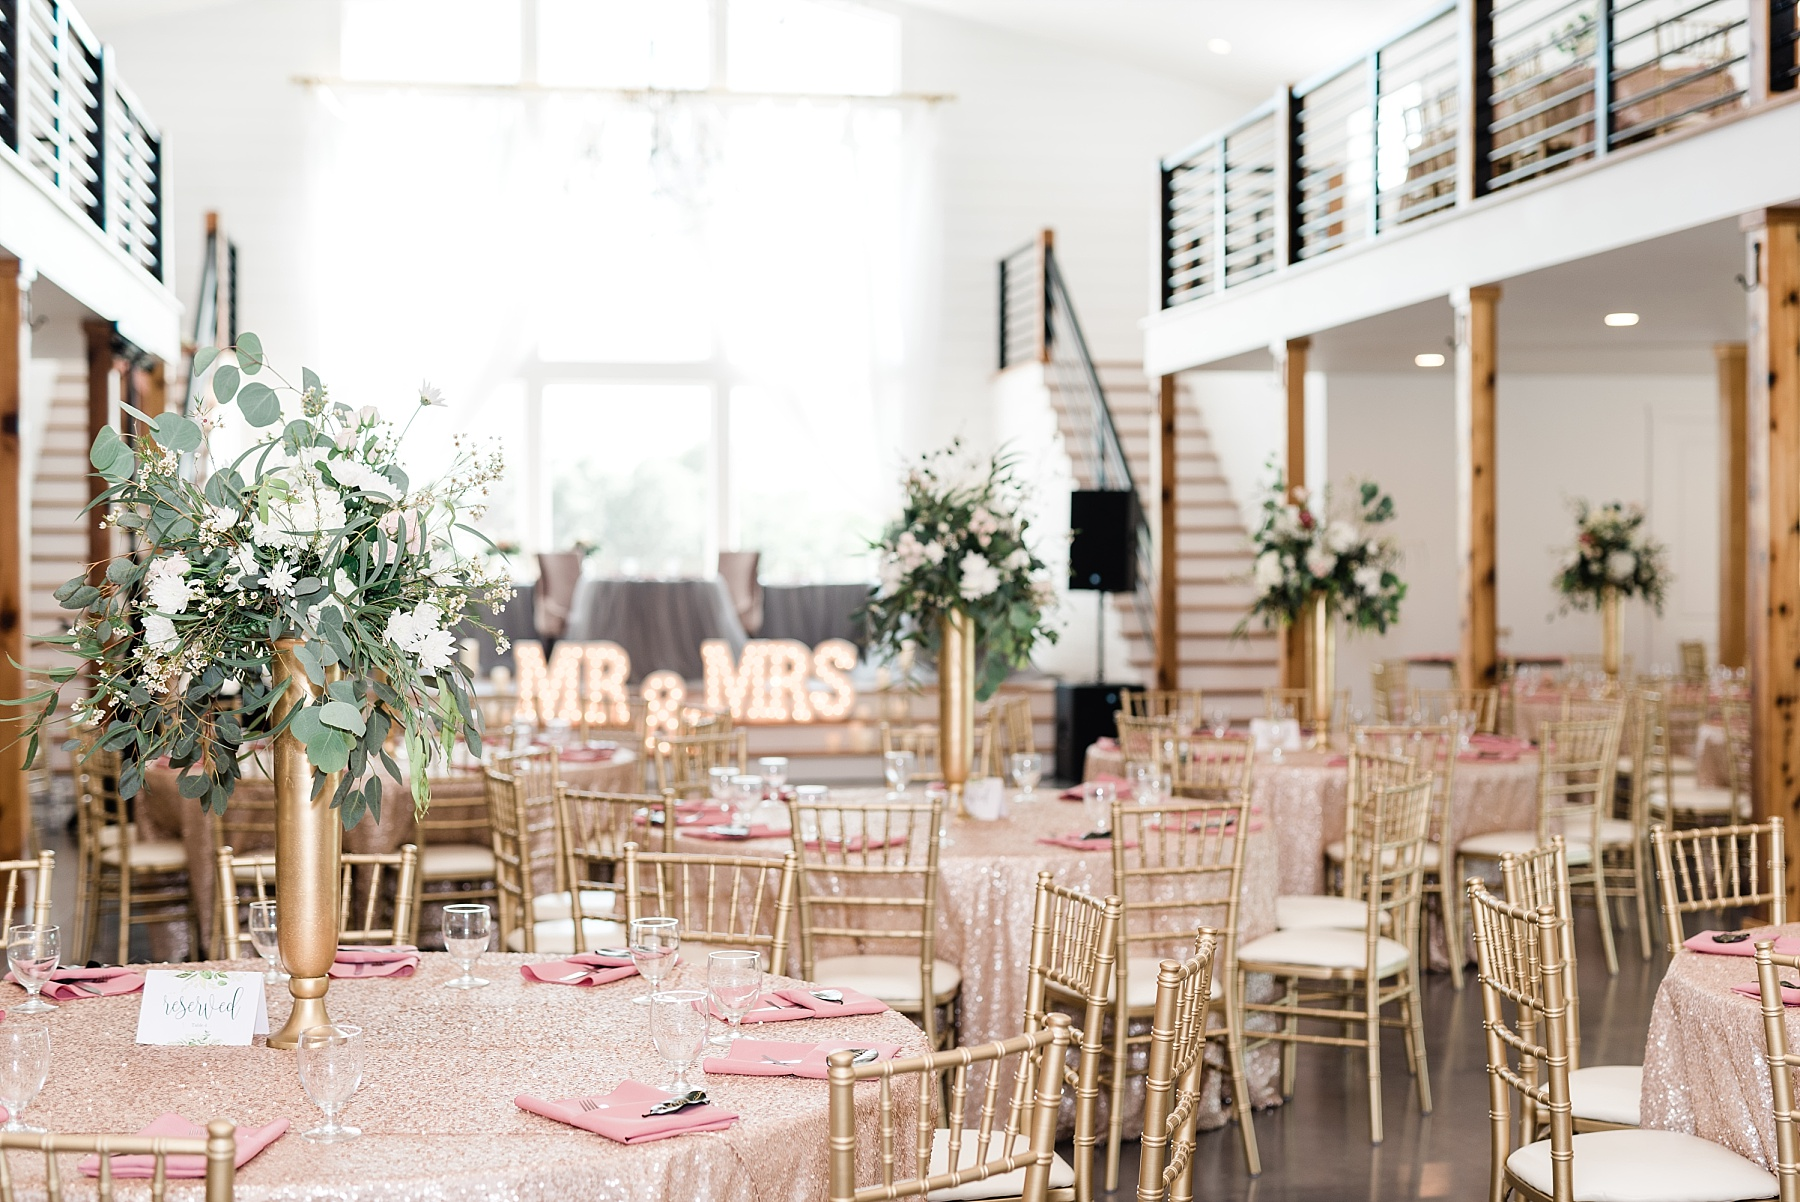 Stunning Heartfelt, Elegant, Fine Art, Chic, Outdoor Spring Wedding with Blush, Cream, Greenery, Rose Gold, and Sequins at Emerson Fields Venue by Kelsi Kliethermes Photography_0035.jpg